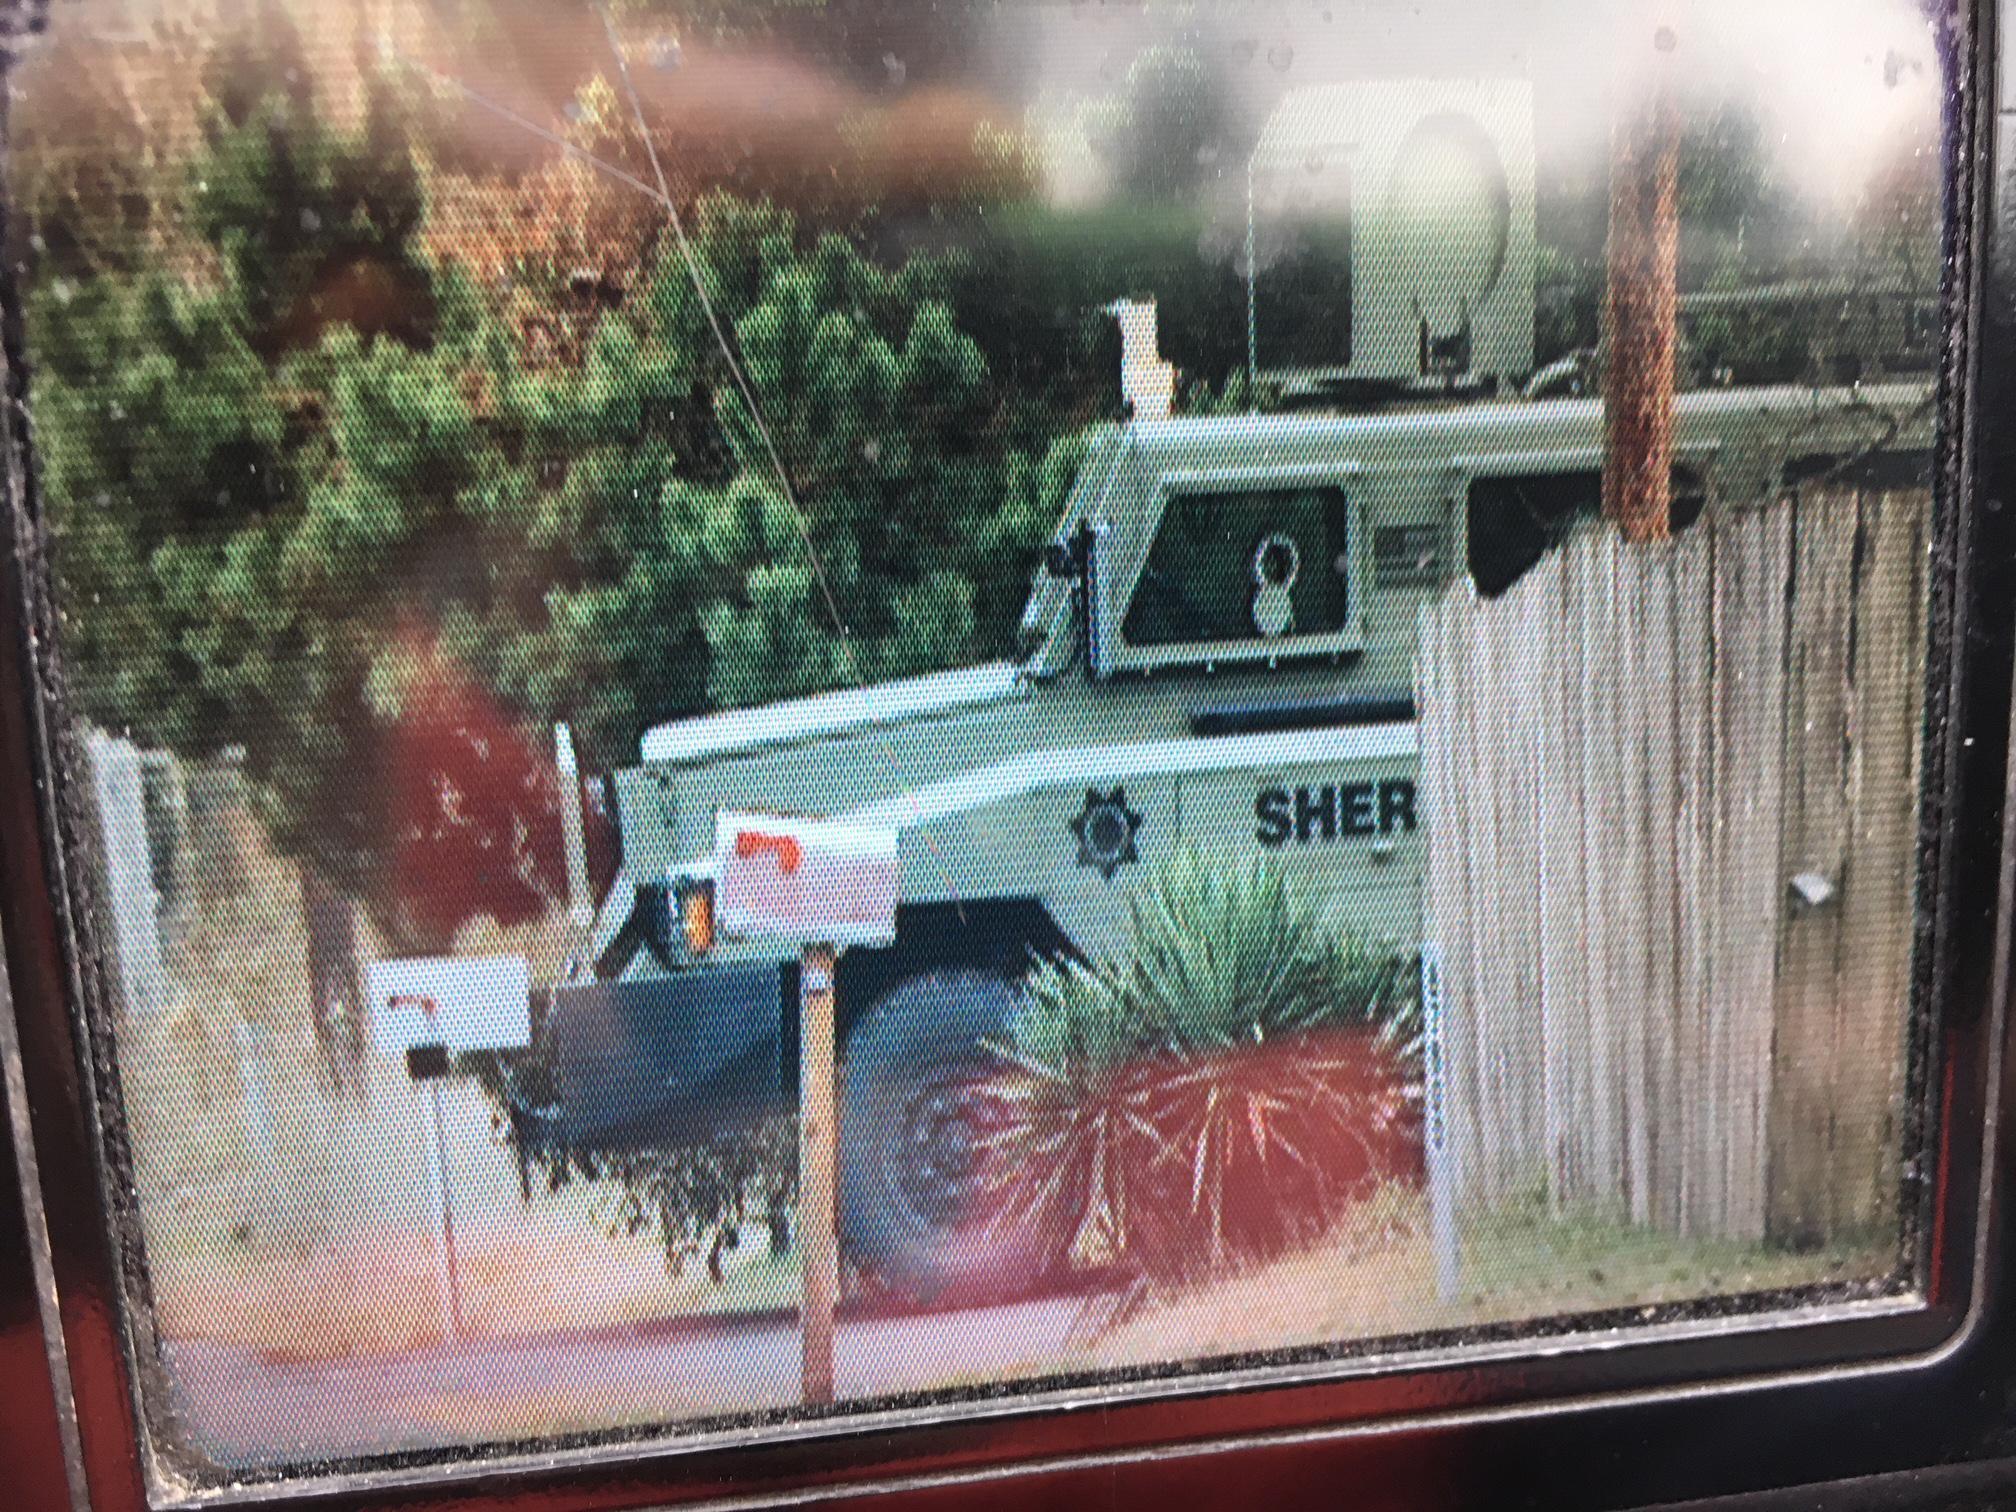 The Lane County Sheriff's Office deployed a tactical team to Veneta after a deputy spotted a wanted suspect at a home on Erdman Way just before 10 a.m. Thursday, December 28, 2017. (SBG)